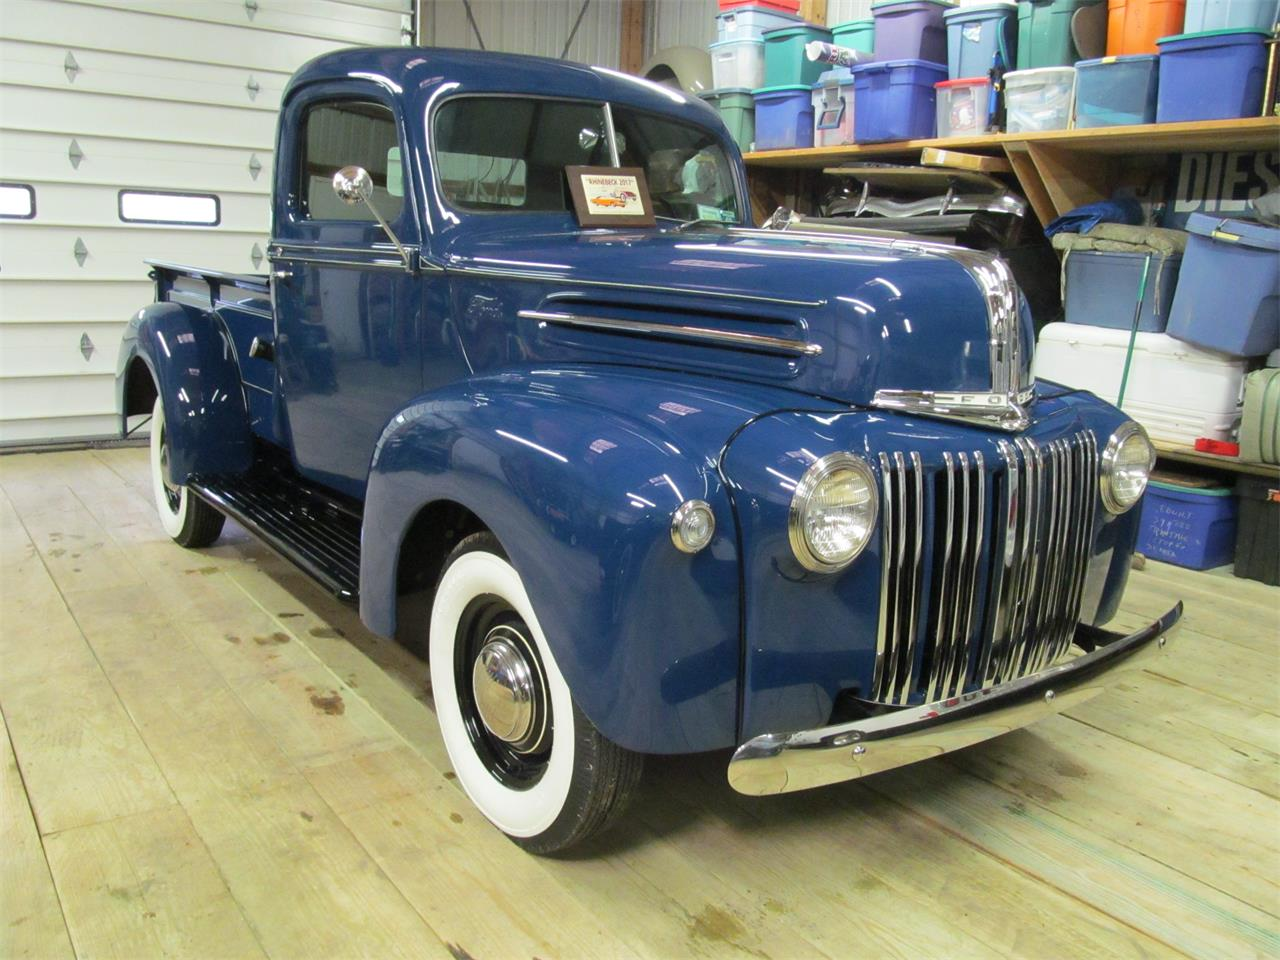 Large Picture of Classic '46 Ford Pickup located in New York - $39,500.00 Offered by a Private Seller - L73X